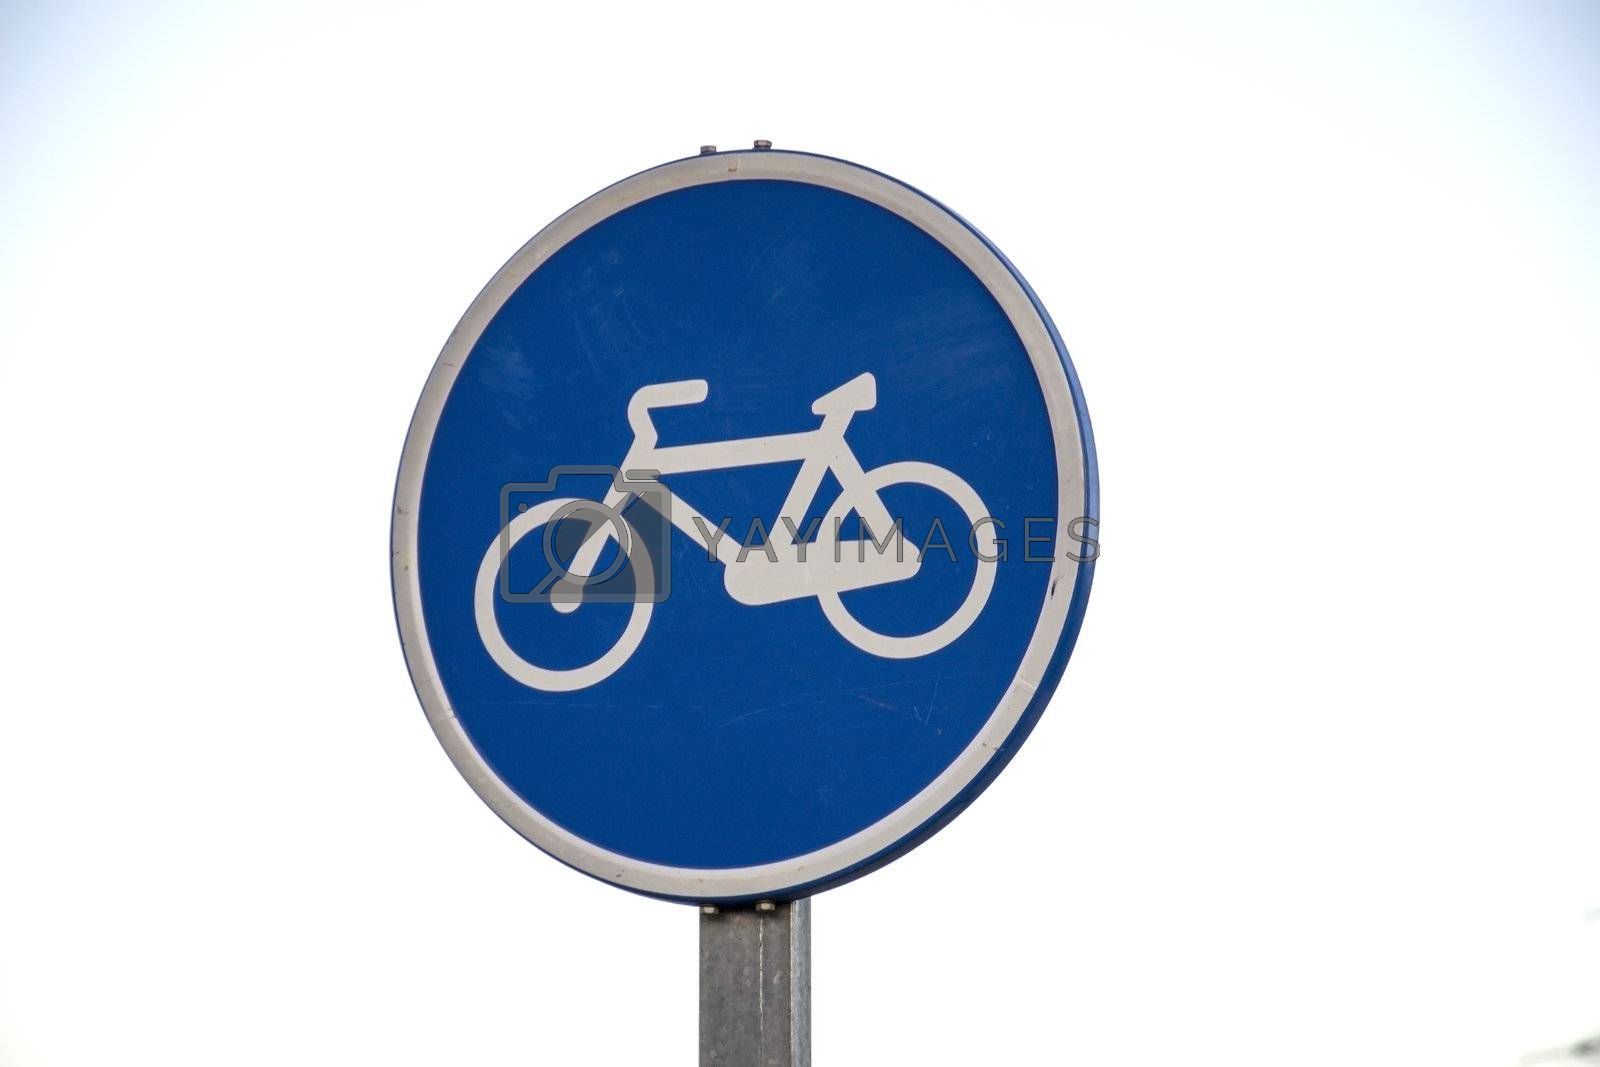 The bicycle path signal